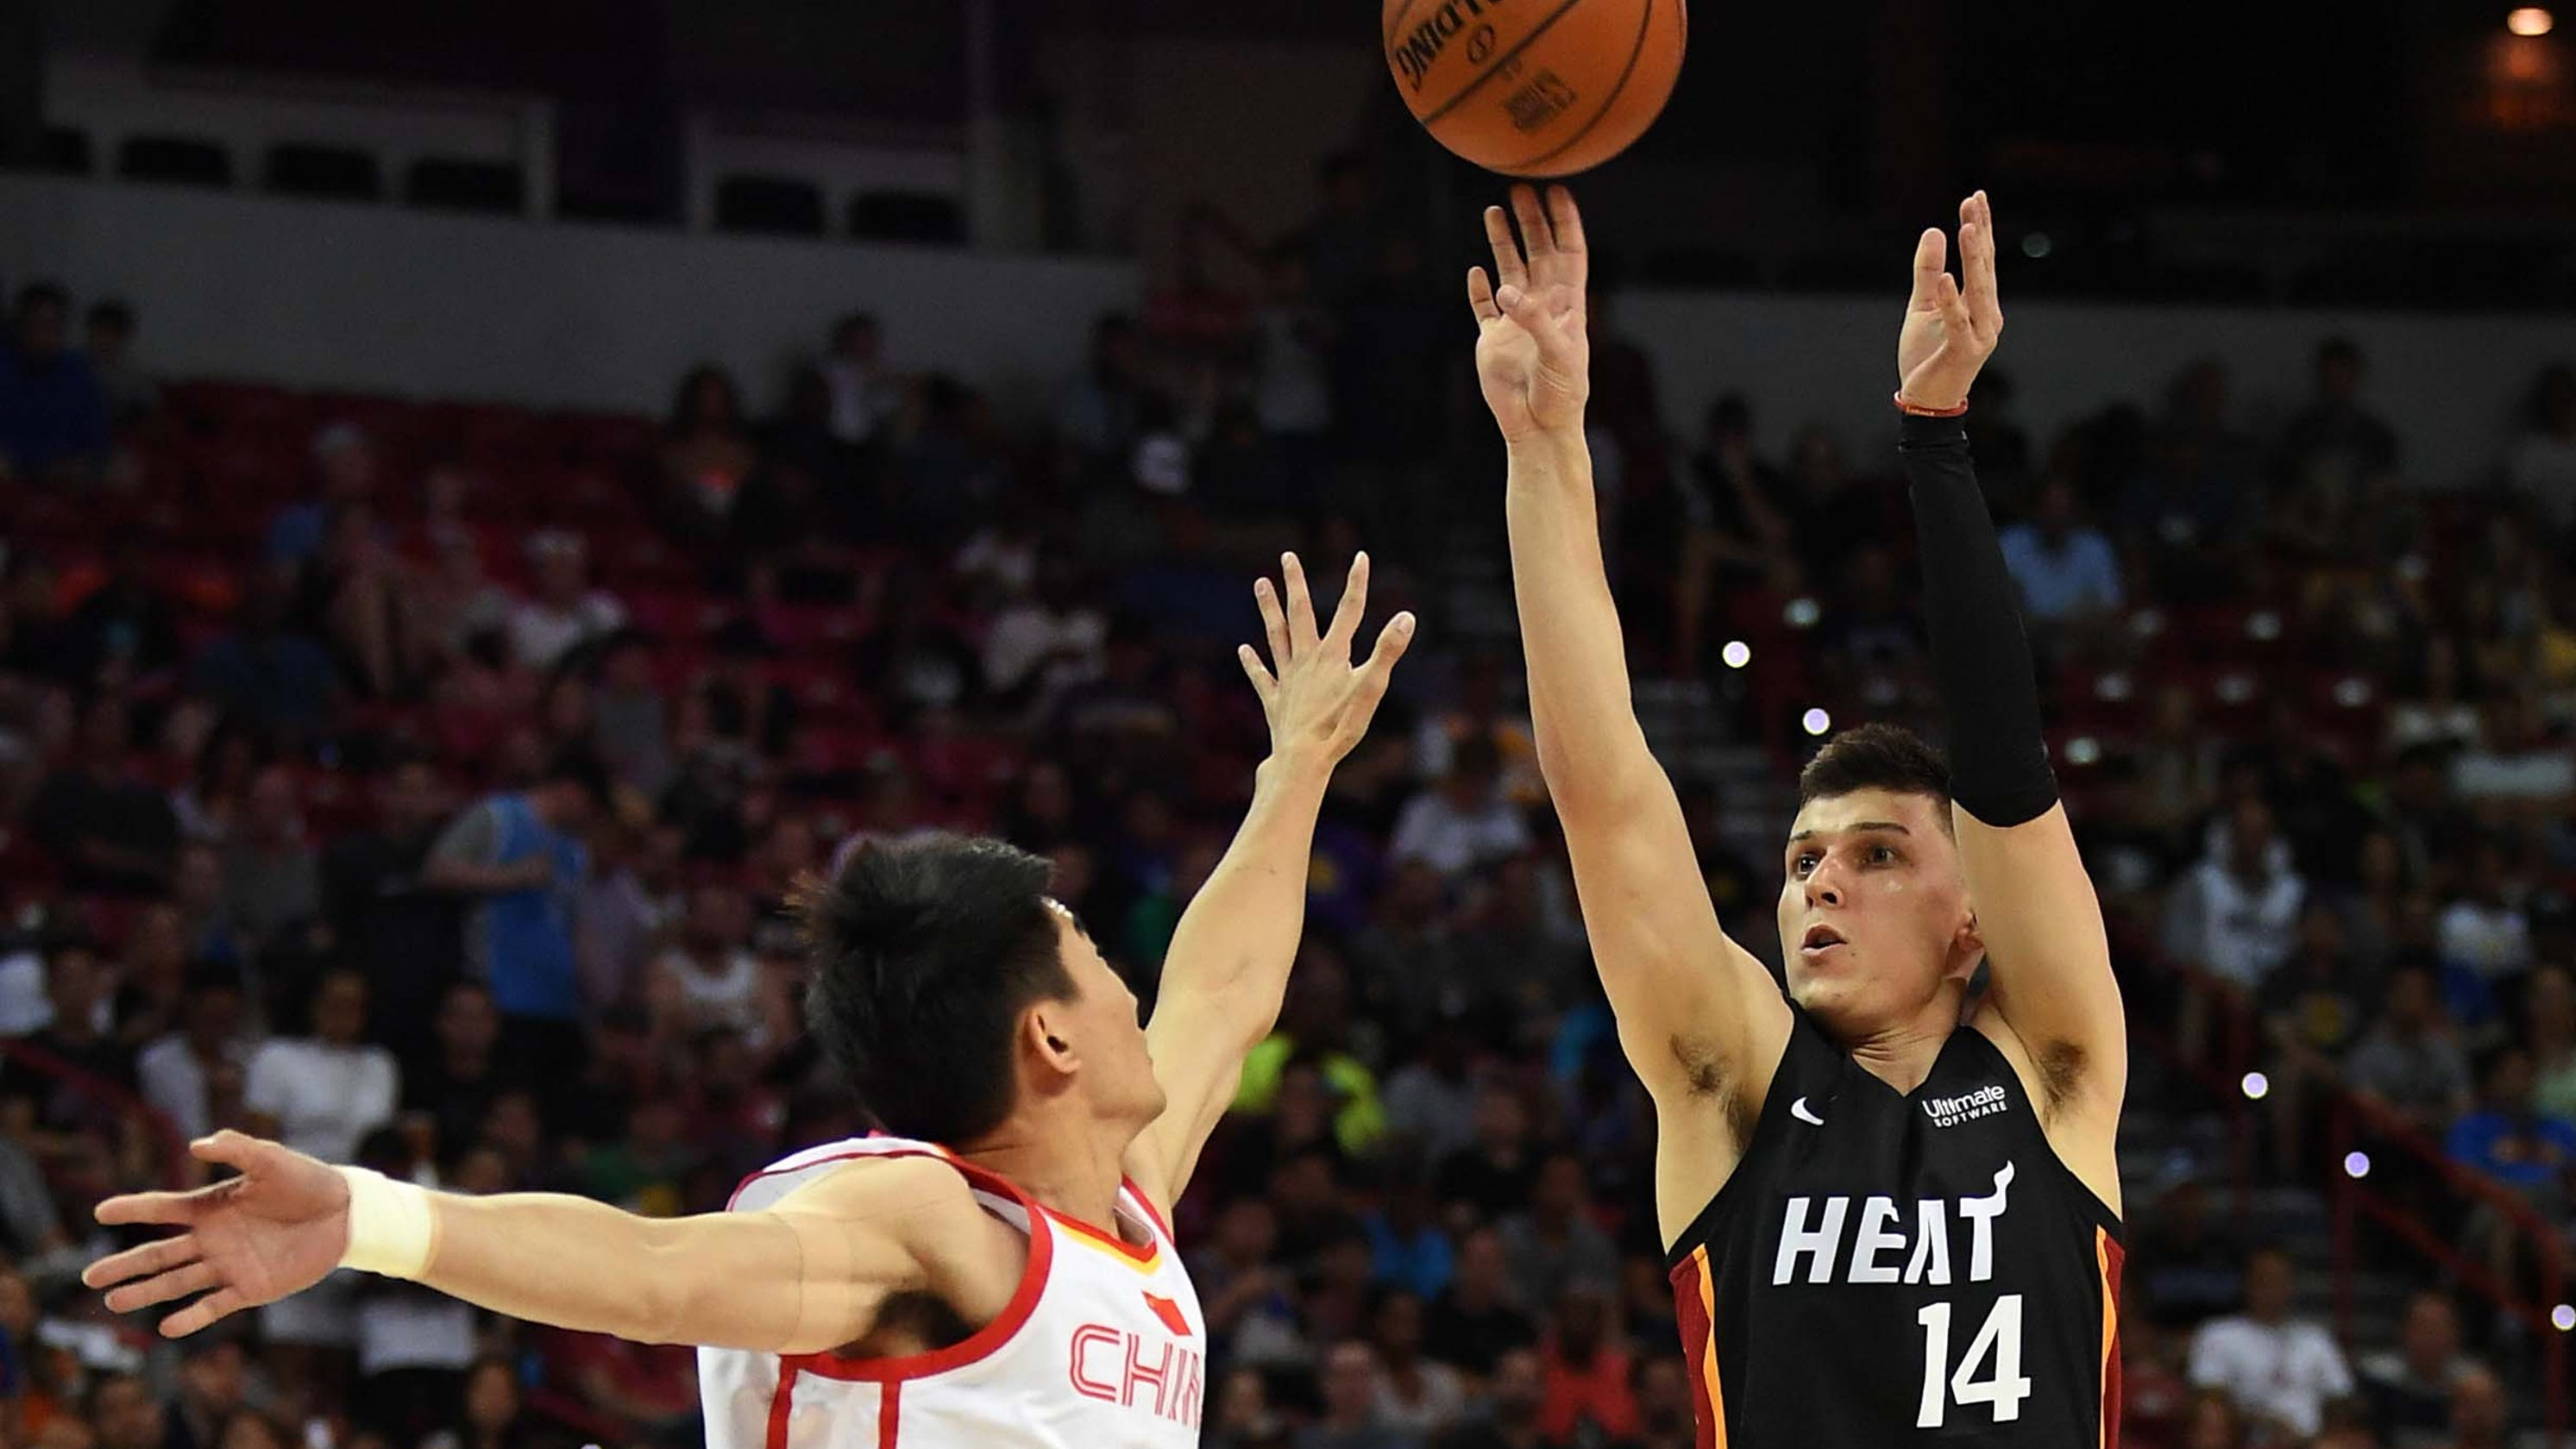 Tyler Herro lighting it up at NBA Summer League